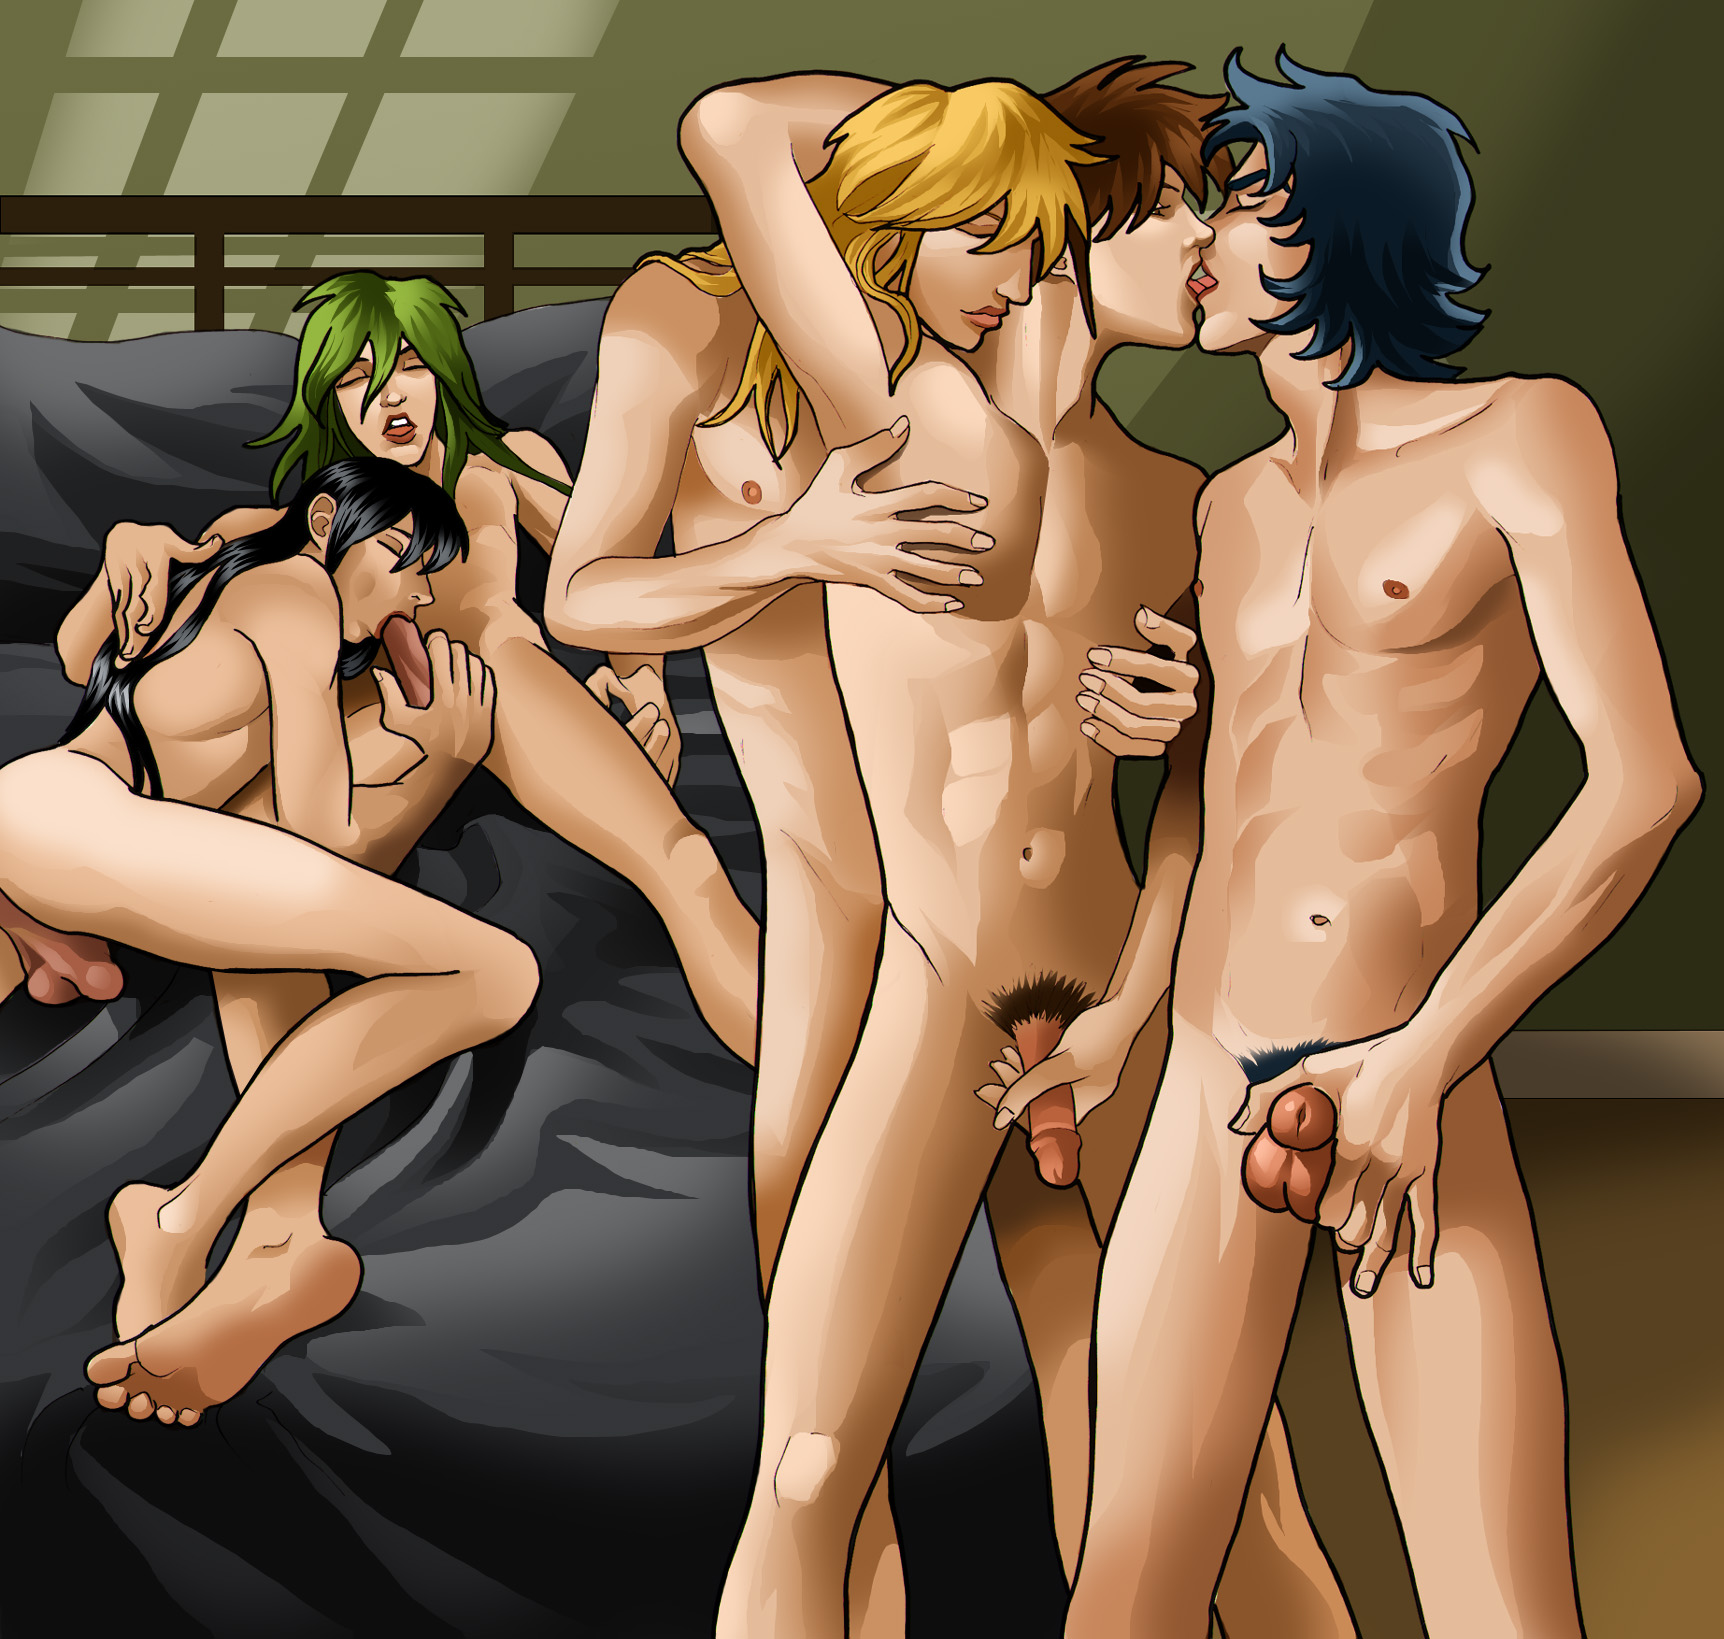 Chained hentai groupsex and hard gangbang